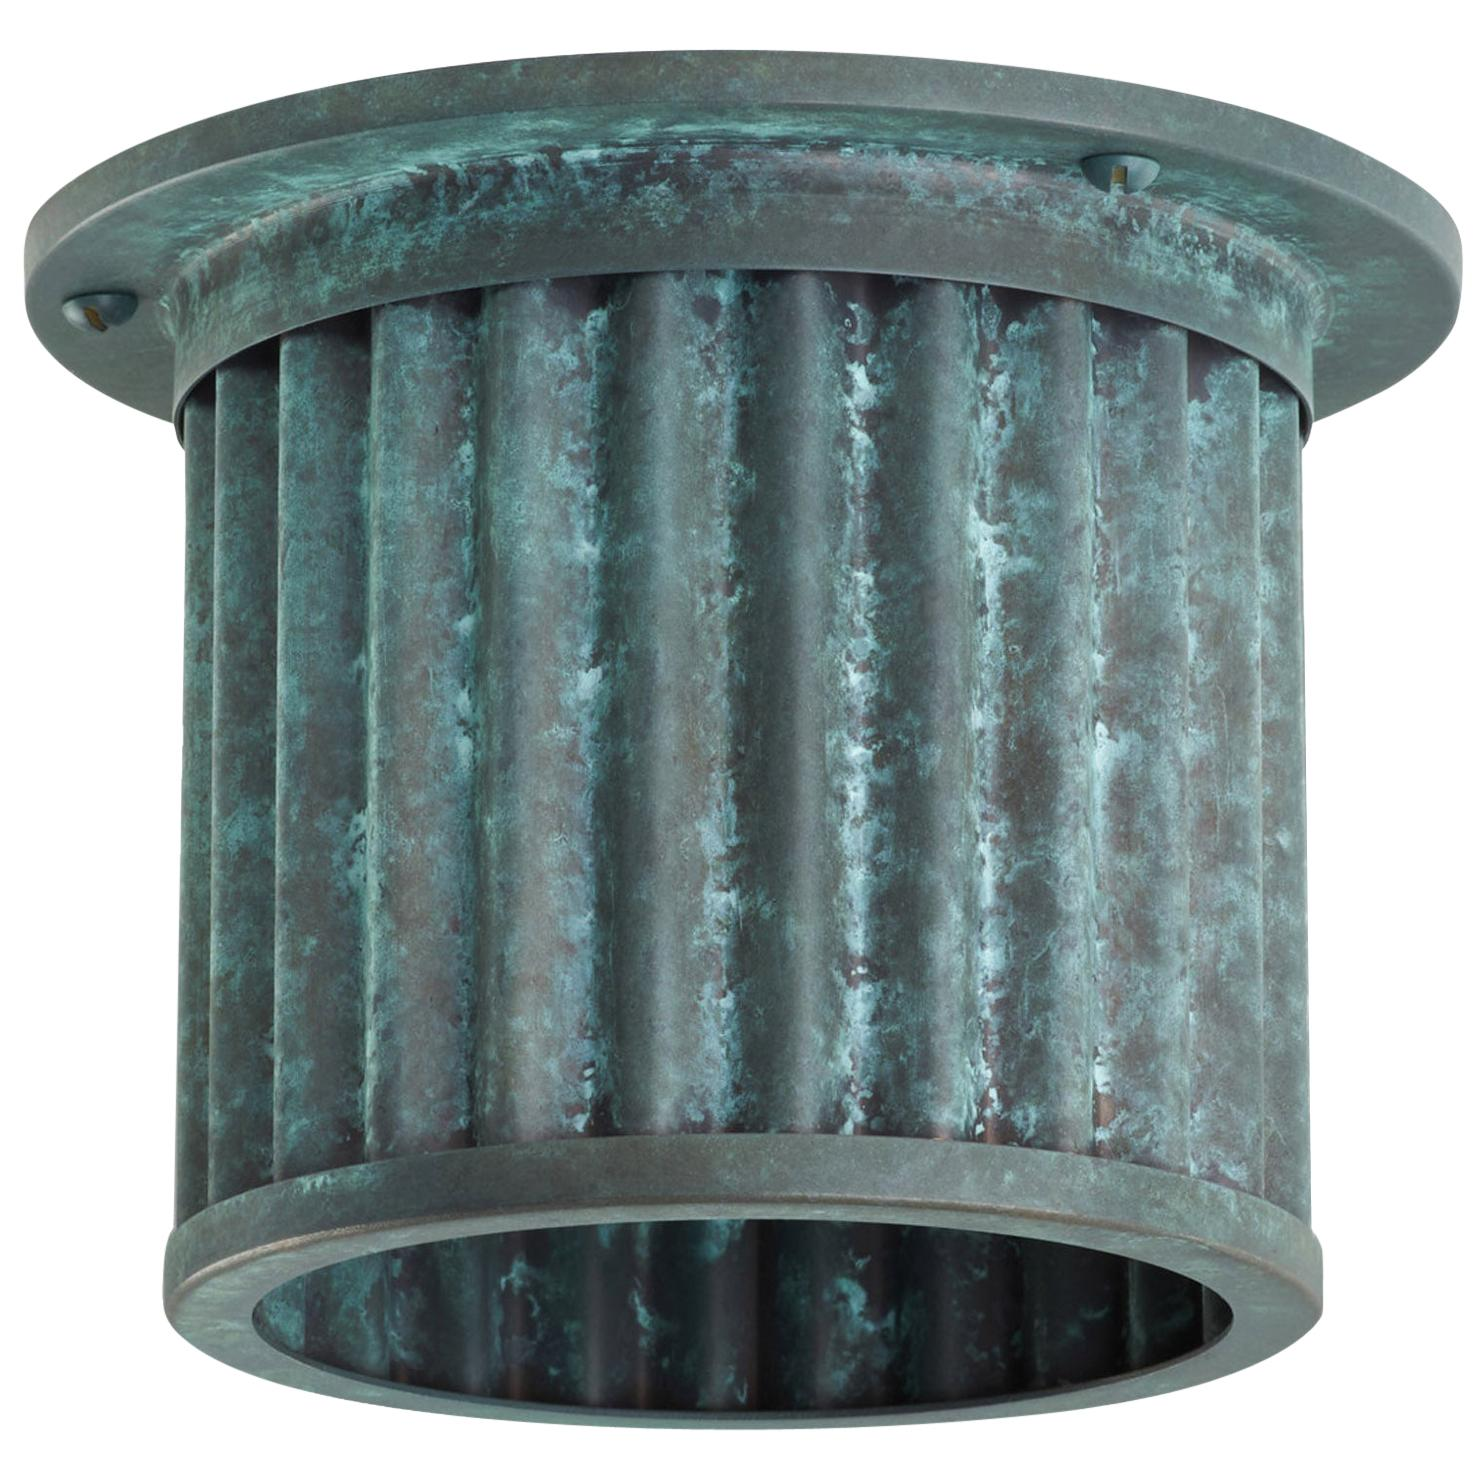 Littleton End Cap Spot Diffuser, Verdigris Recessed Spot Light Shade